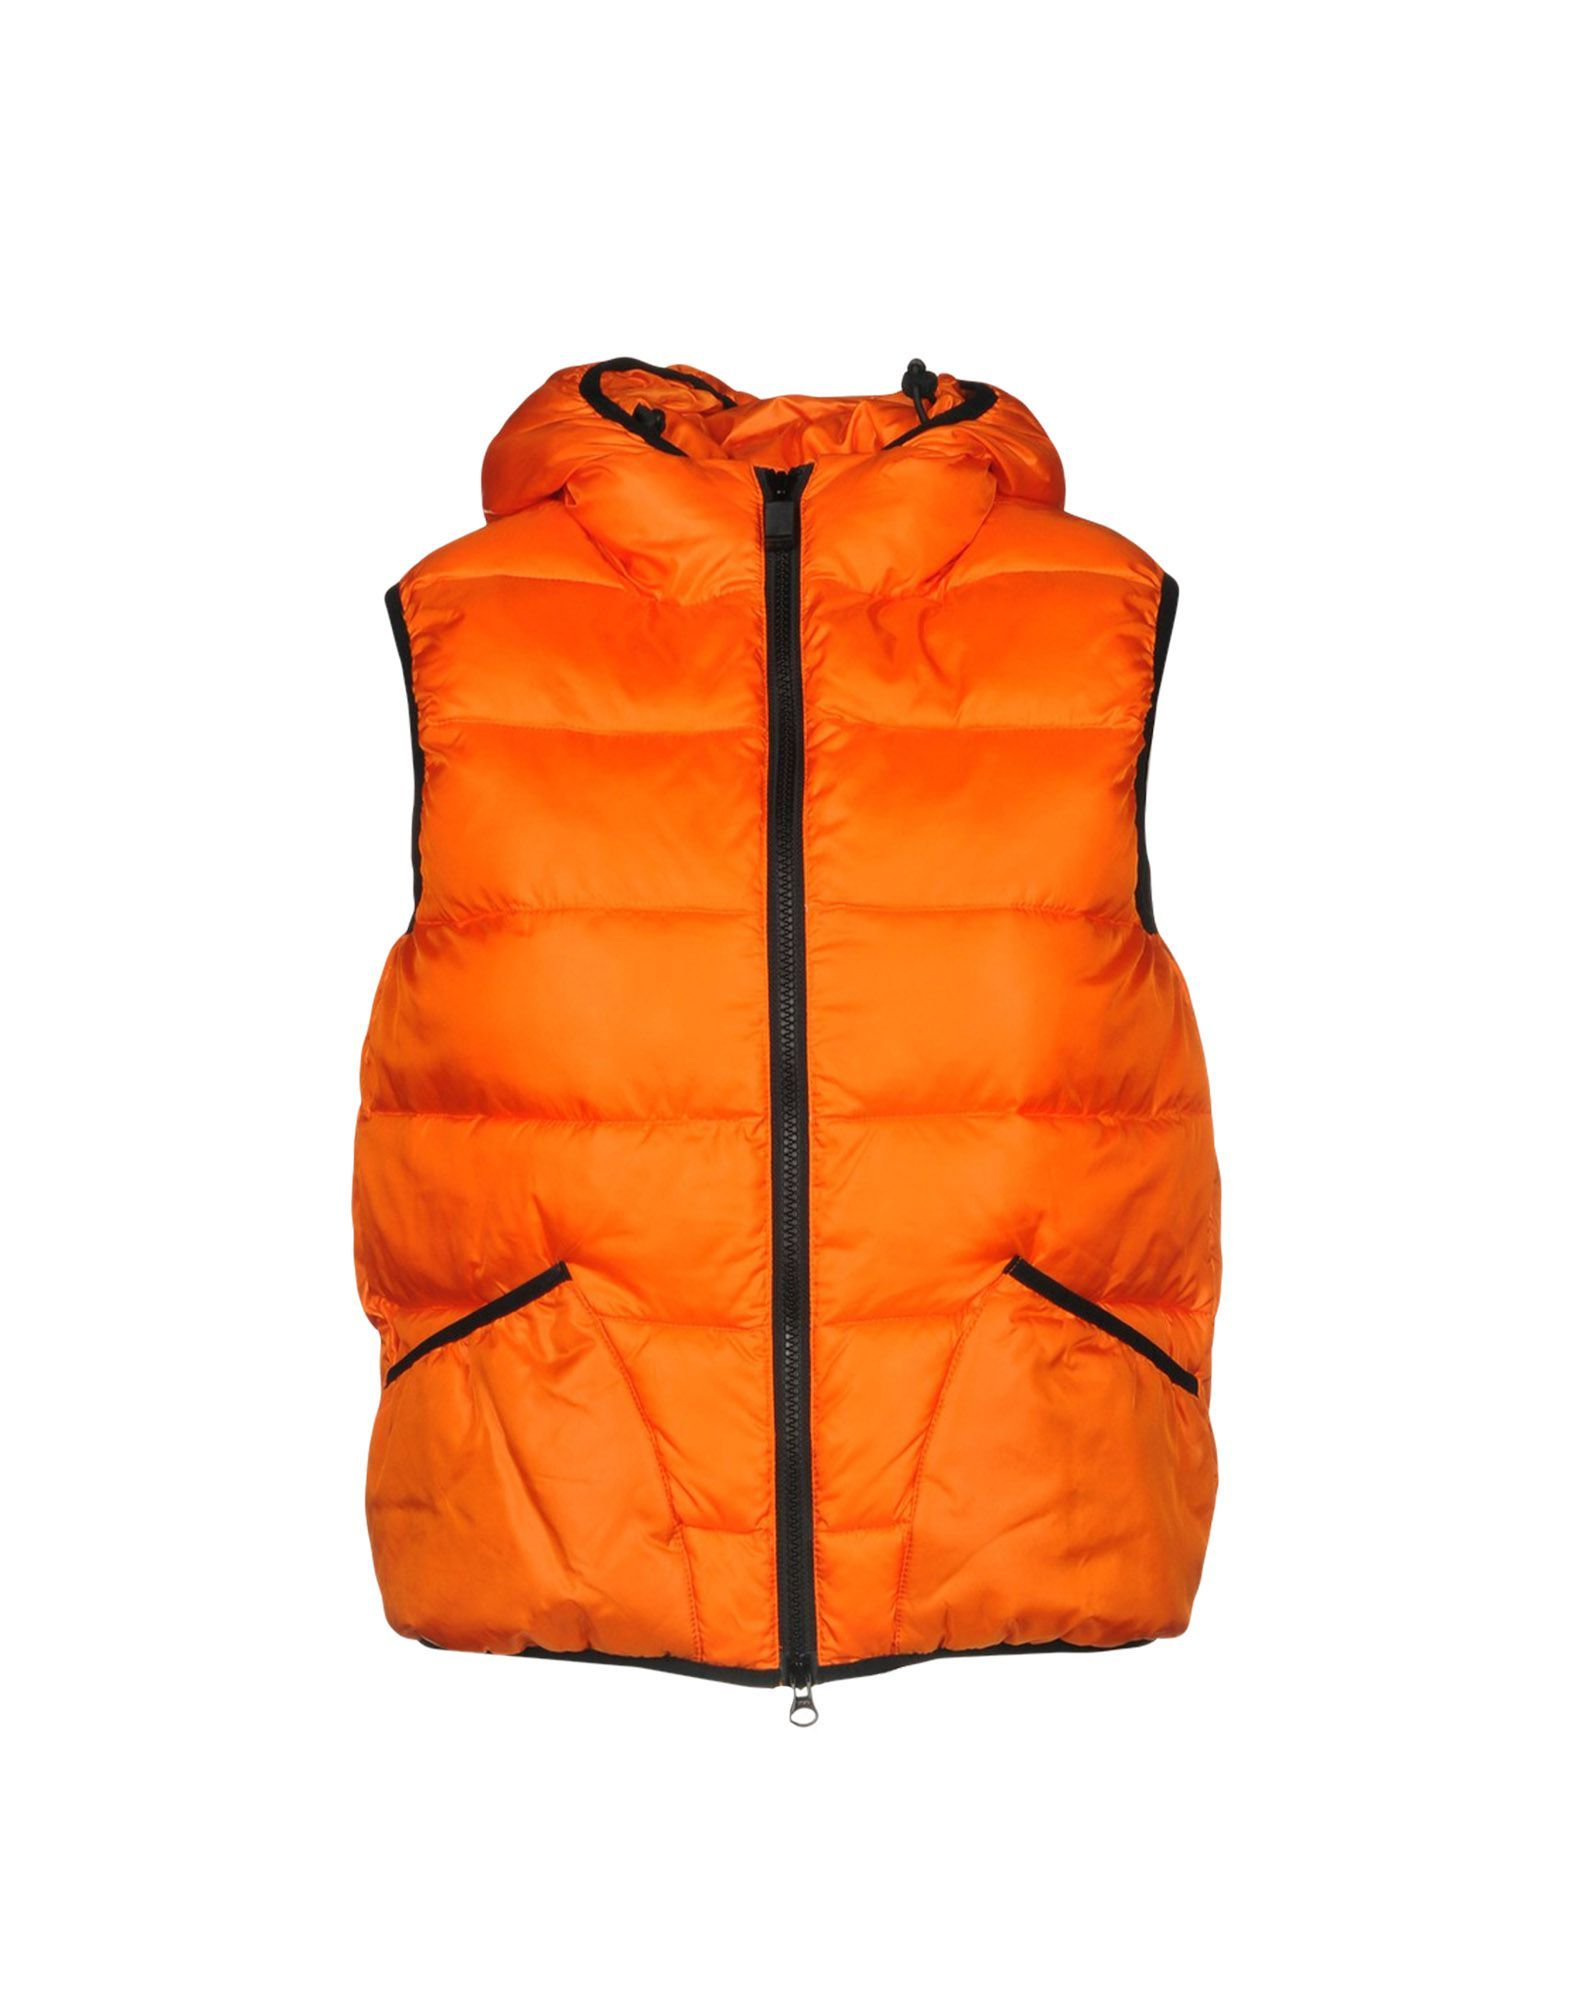 Aspesi Orange Techno Fabric Gilet